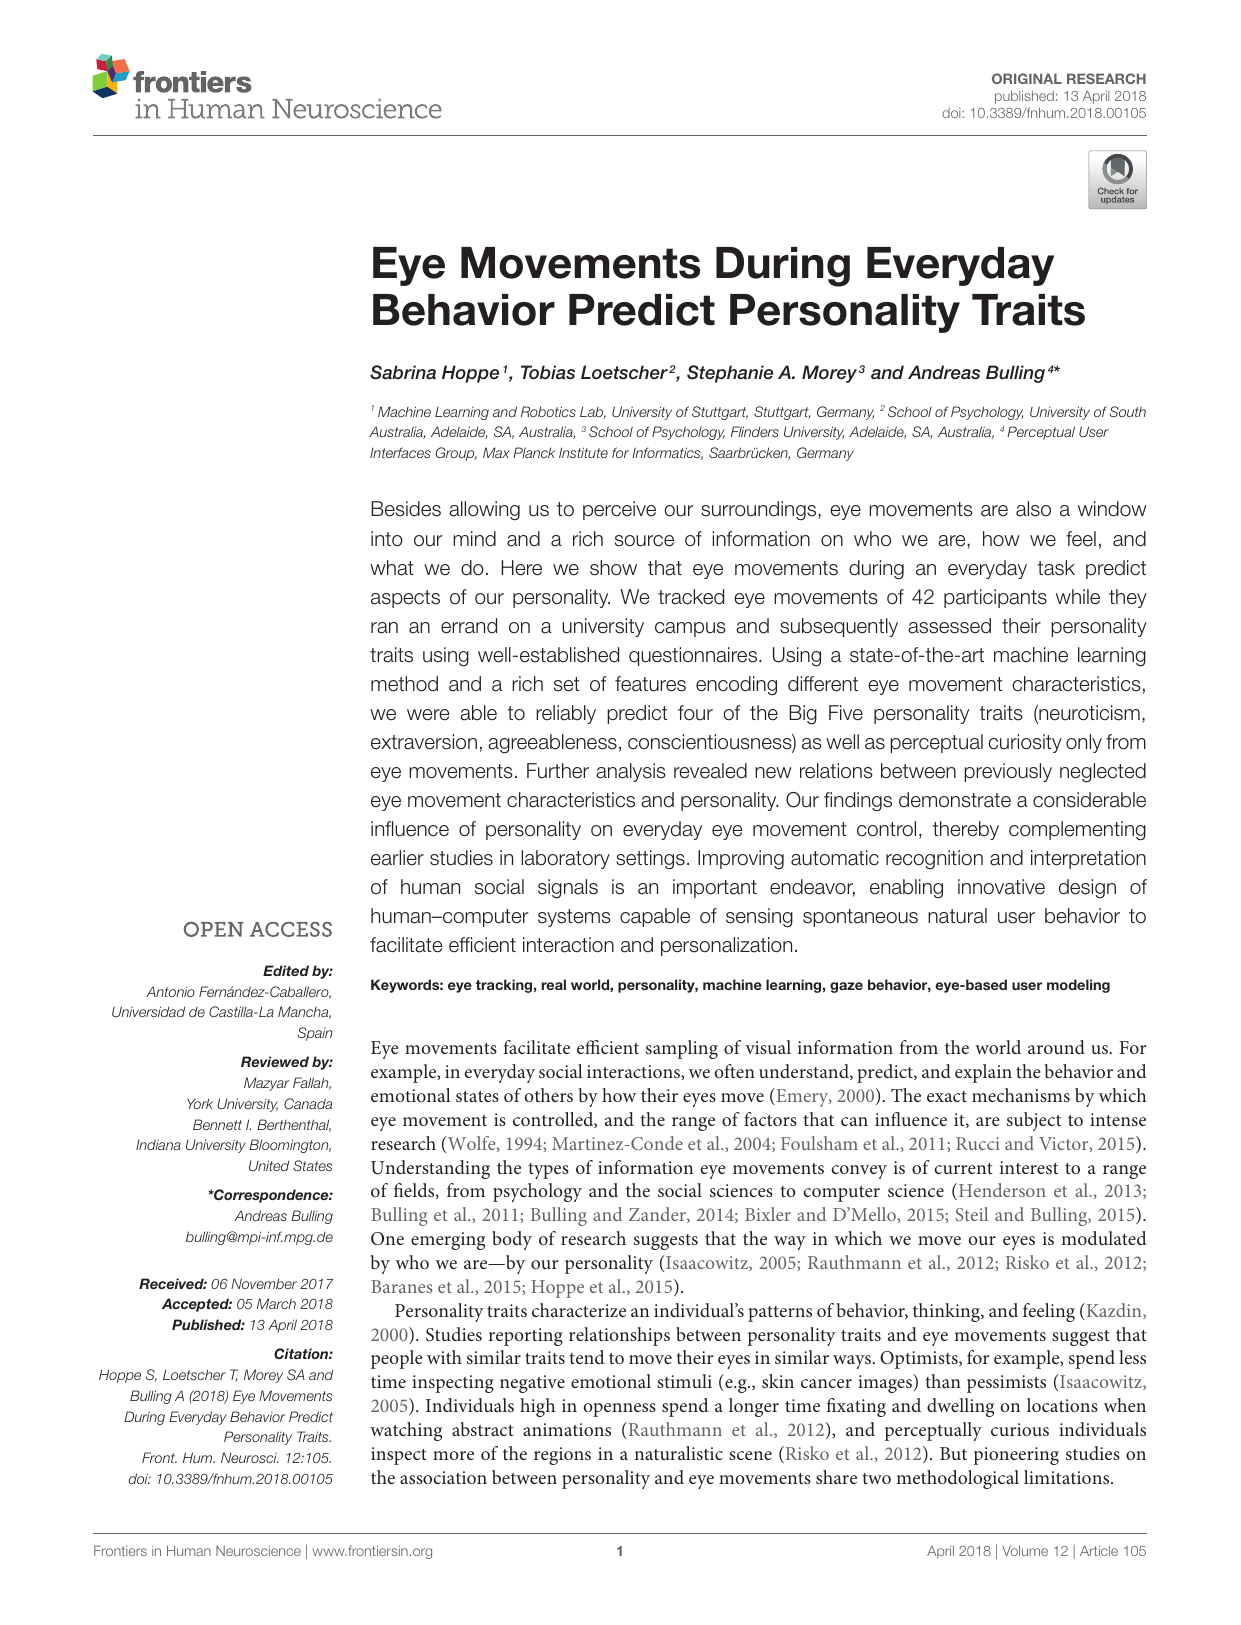 Eye movements during everyday behavior predict personality traits